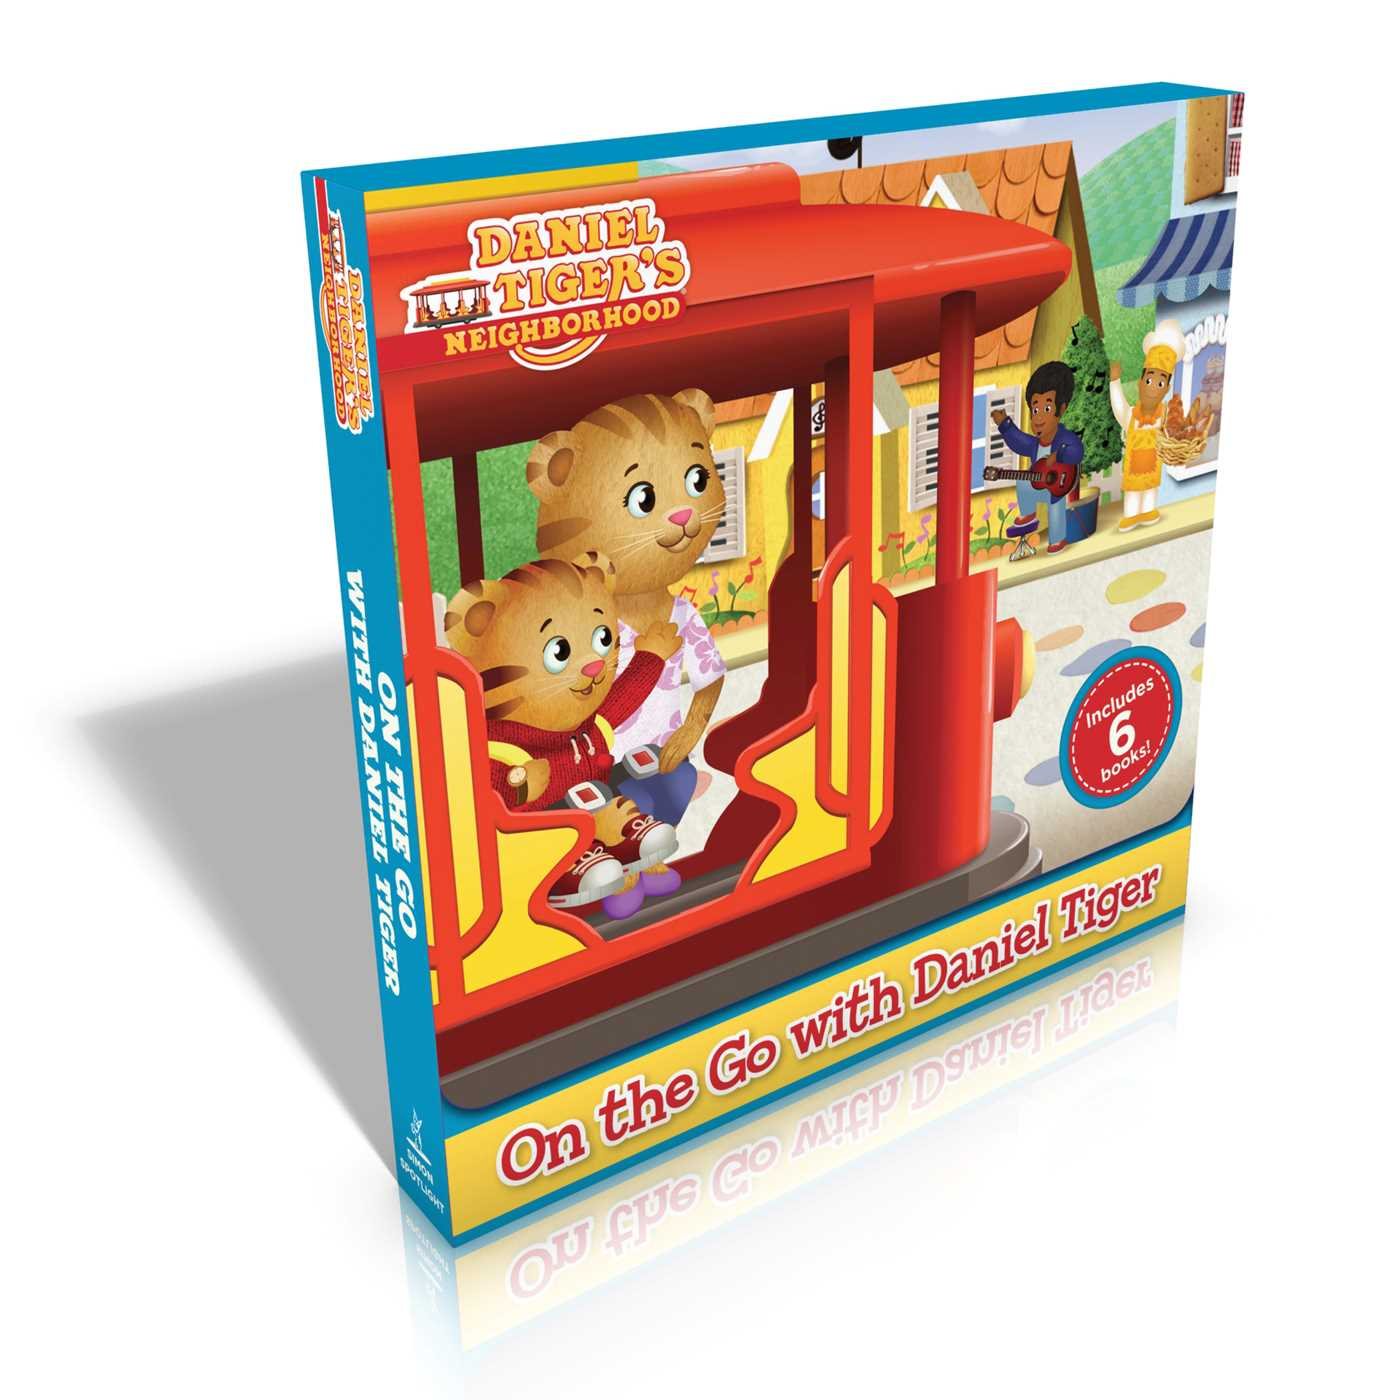 On the go with daniel tiger 9781481467995 hr